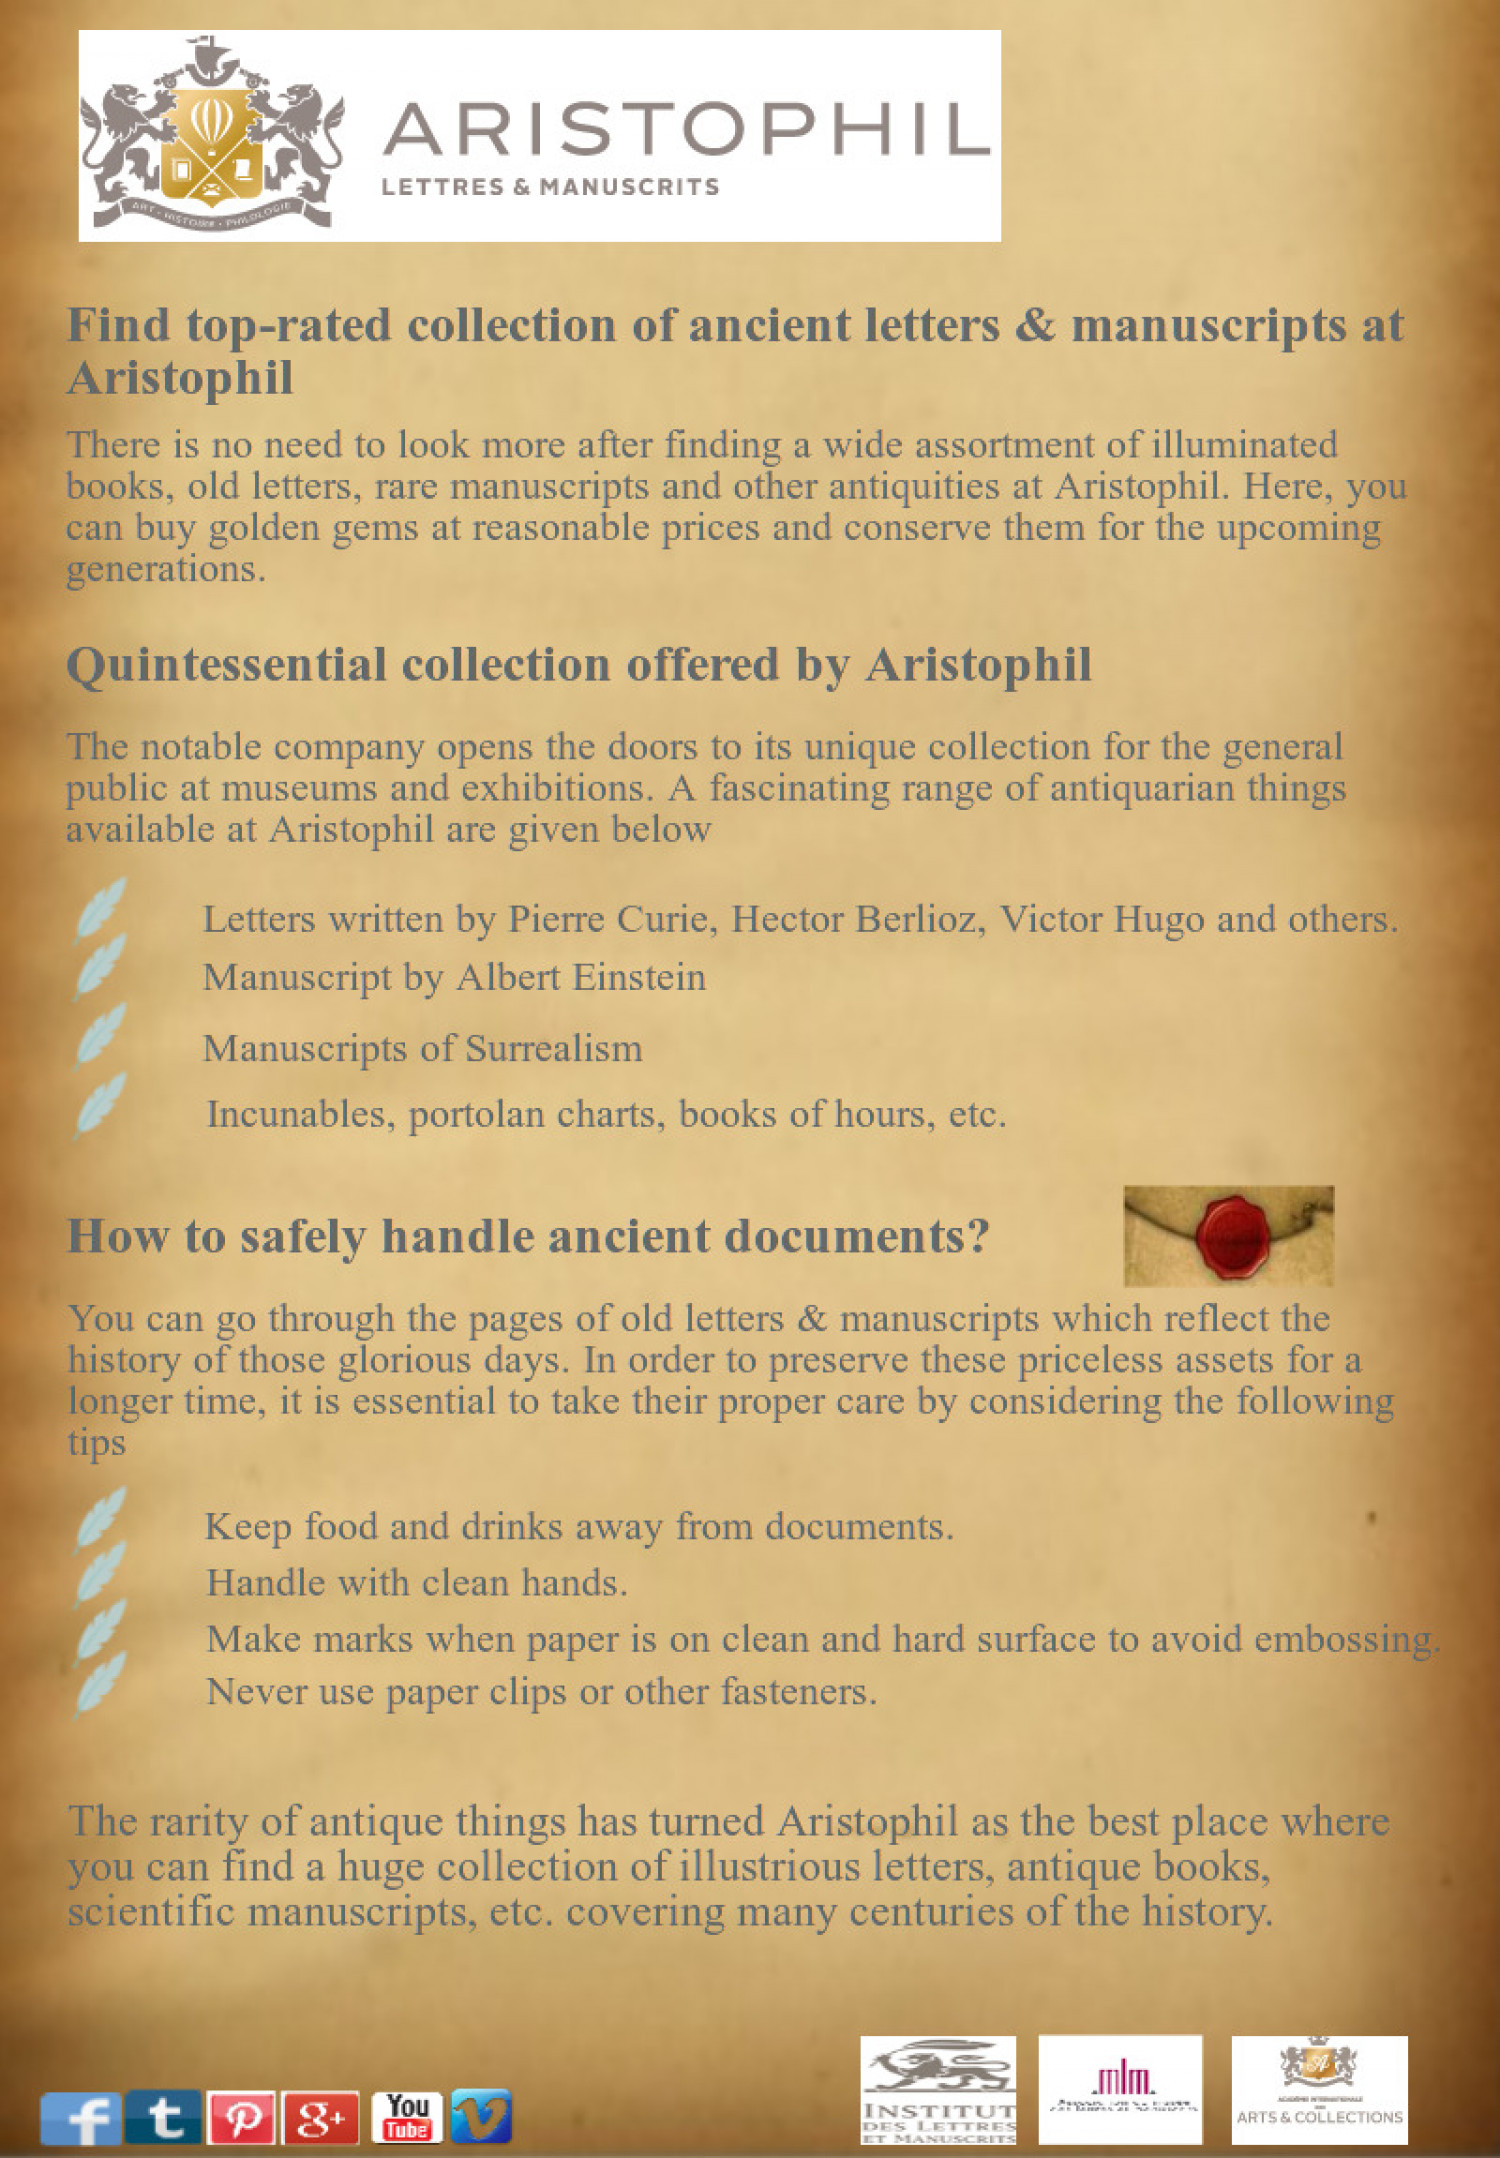 Find top-rated collection of ancient letters & manuscripts at Aristophil Infographic